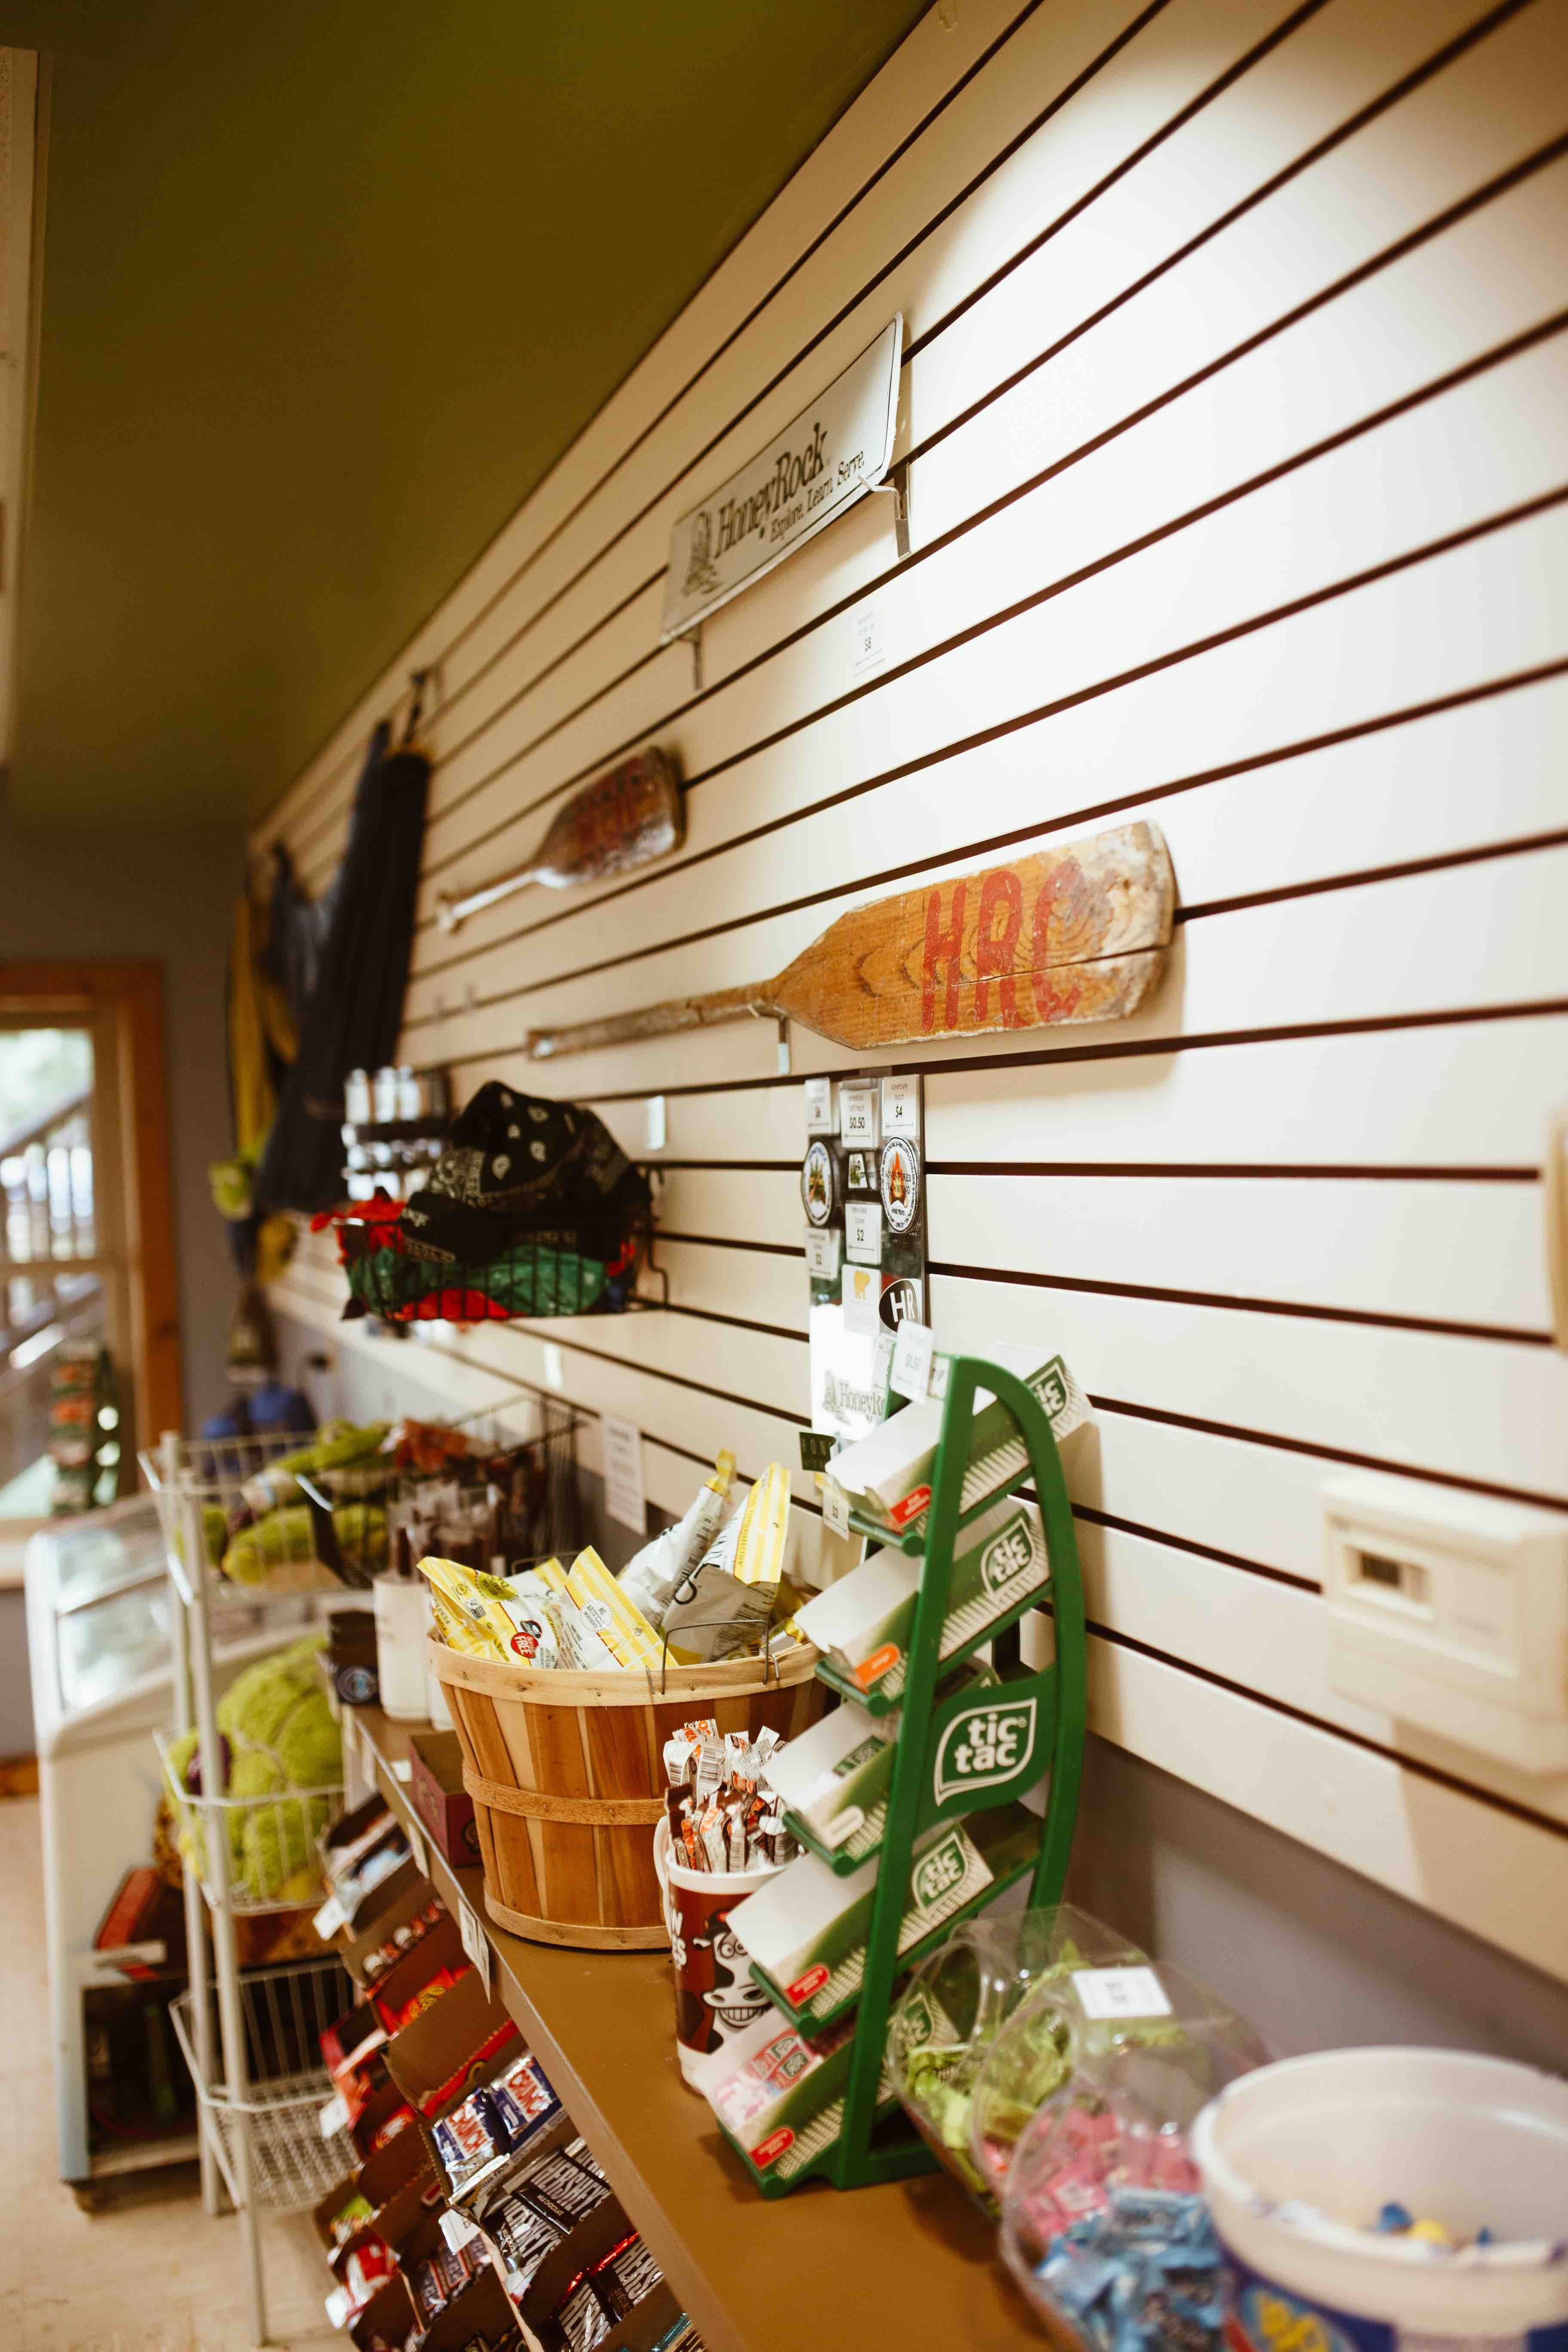 The Beehive sells apparel, drinkware, and fun souvenirs. In addition to this, we sell a limited selection of snacks, toiletry items, stamps, and postcards.